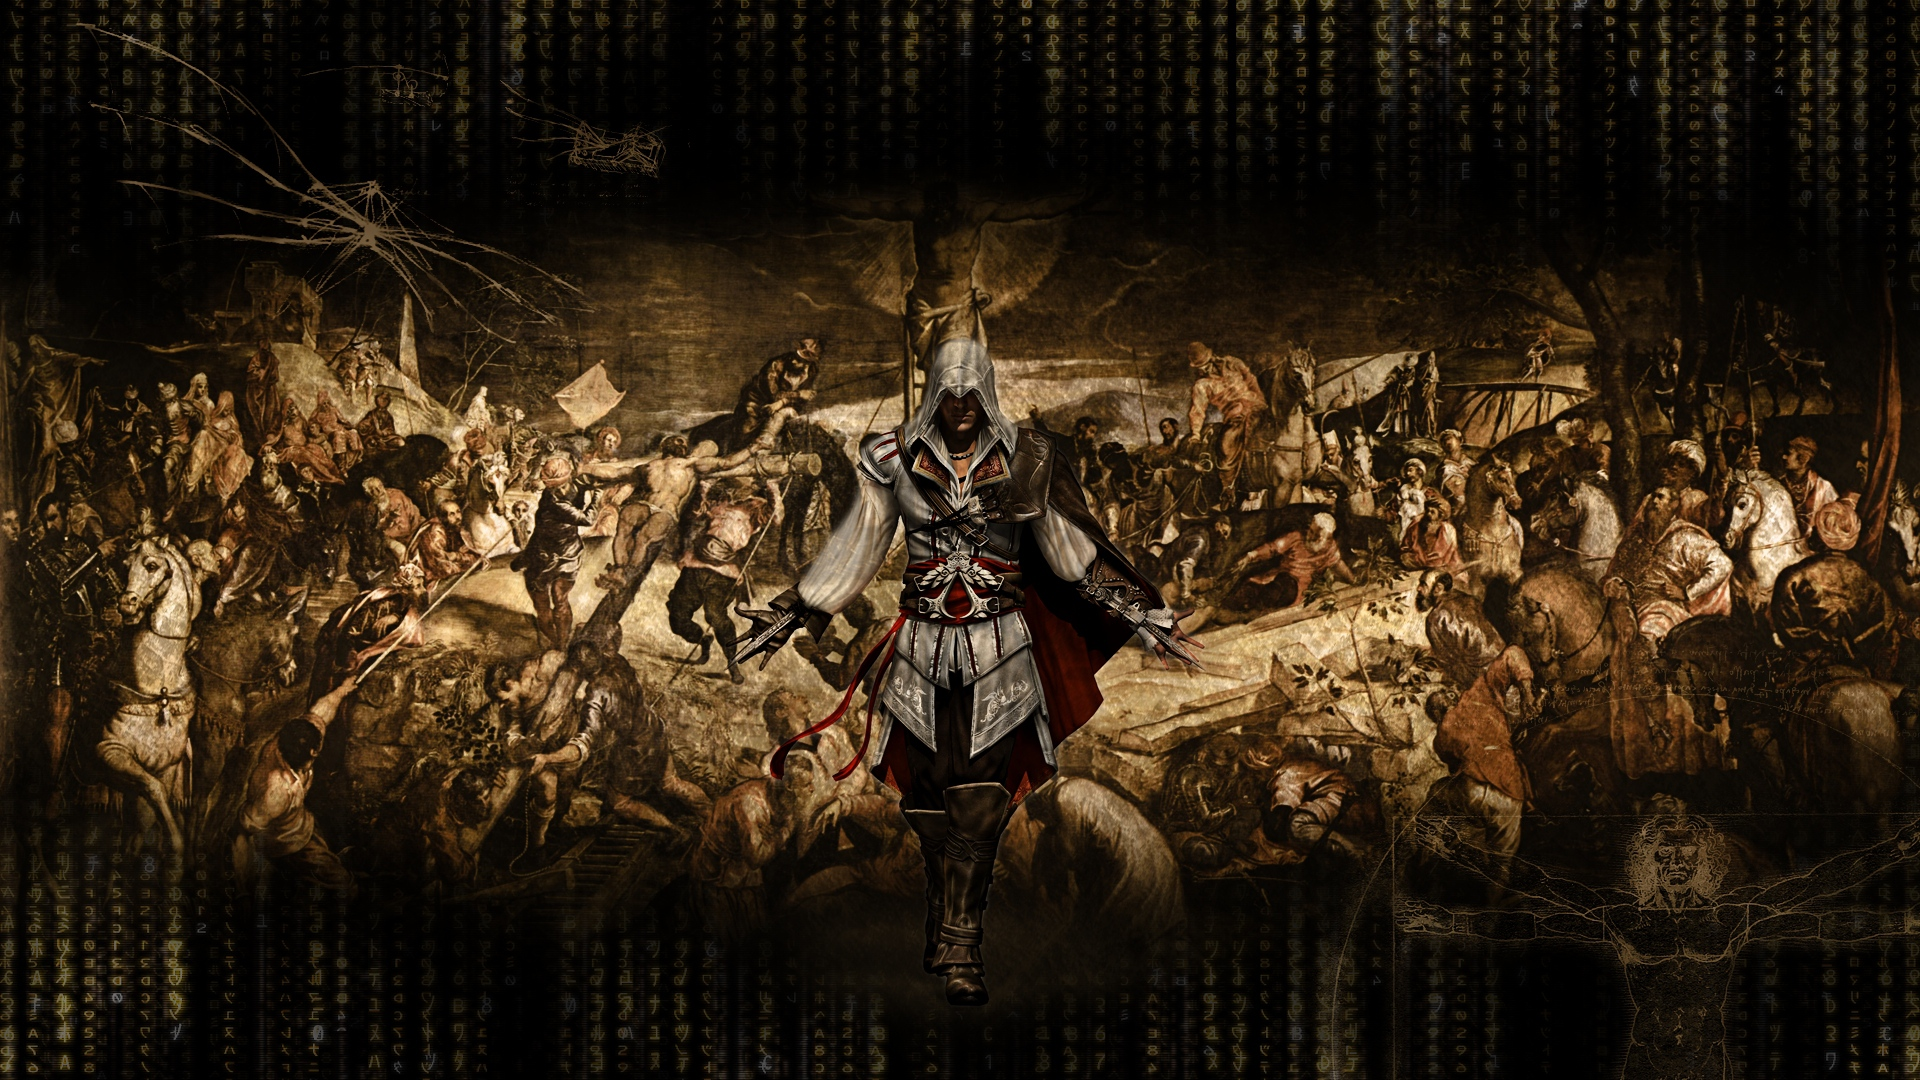 Download wallpaper 1920x1080 assassins creed graphics background get the latest assassins creed graphics background news pictures and videos and learn all about assassins creed graphics background from voltagebd Gallery